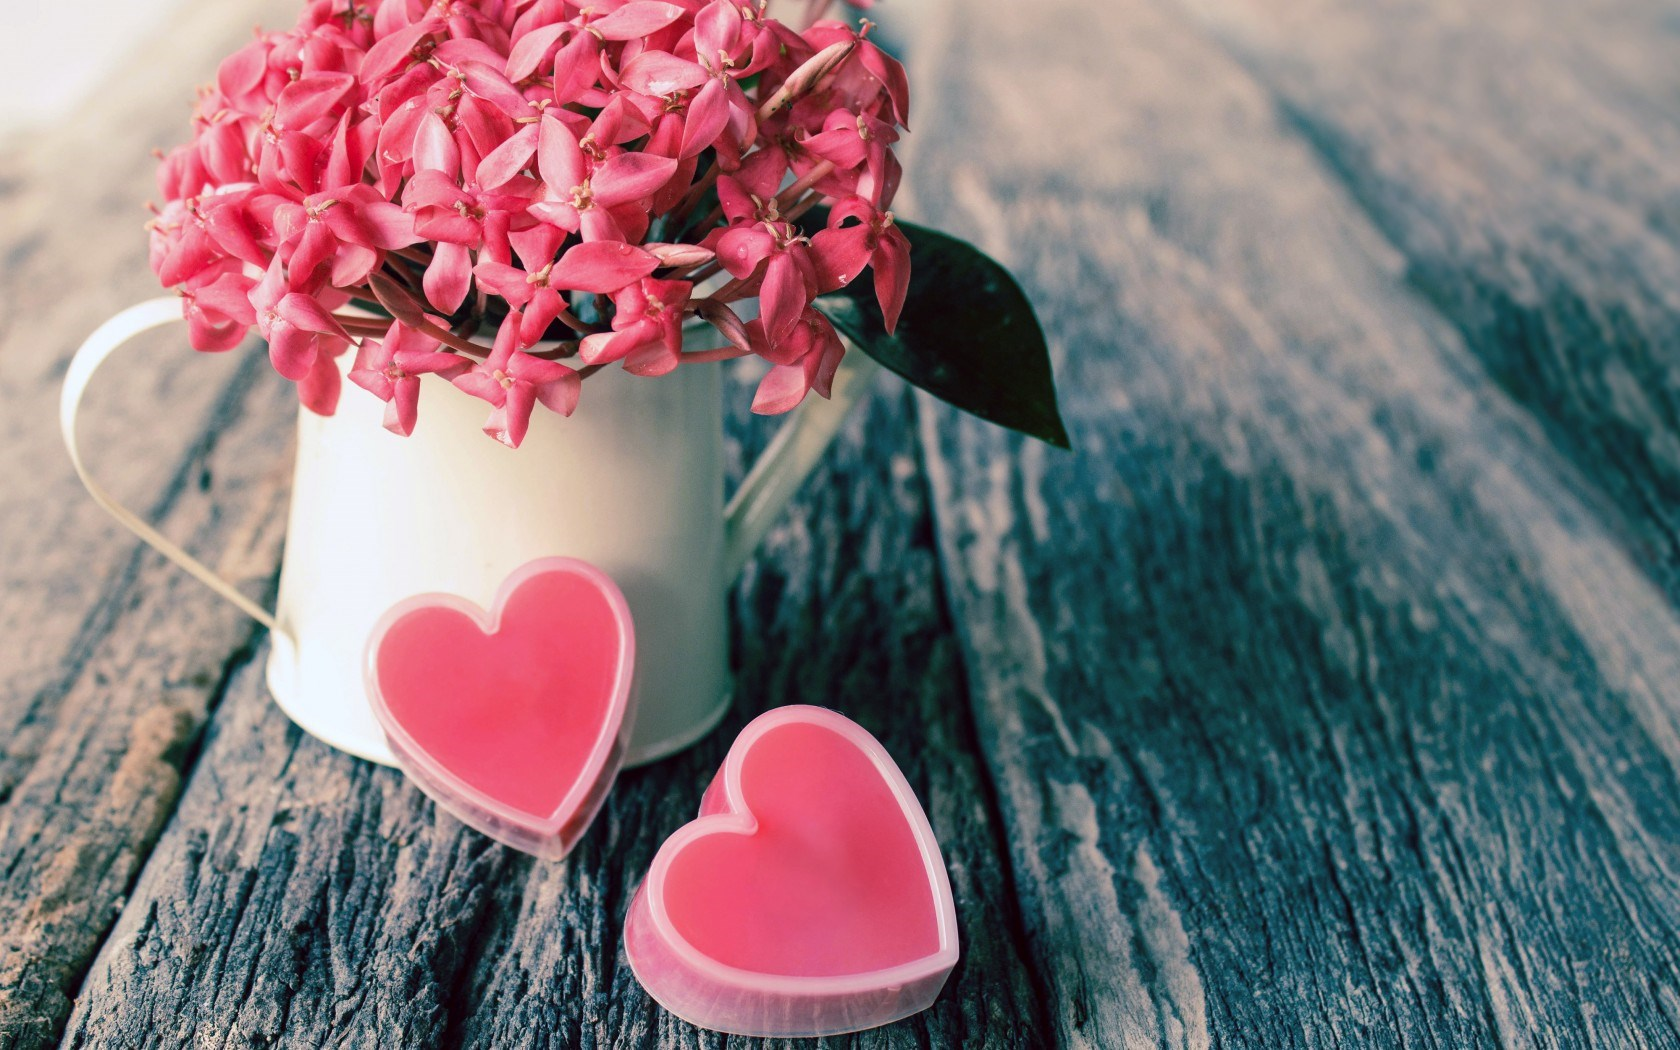 Vase Flowers Pink Hearts Love